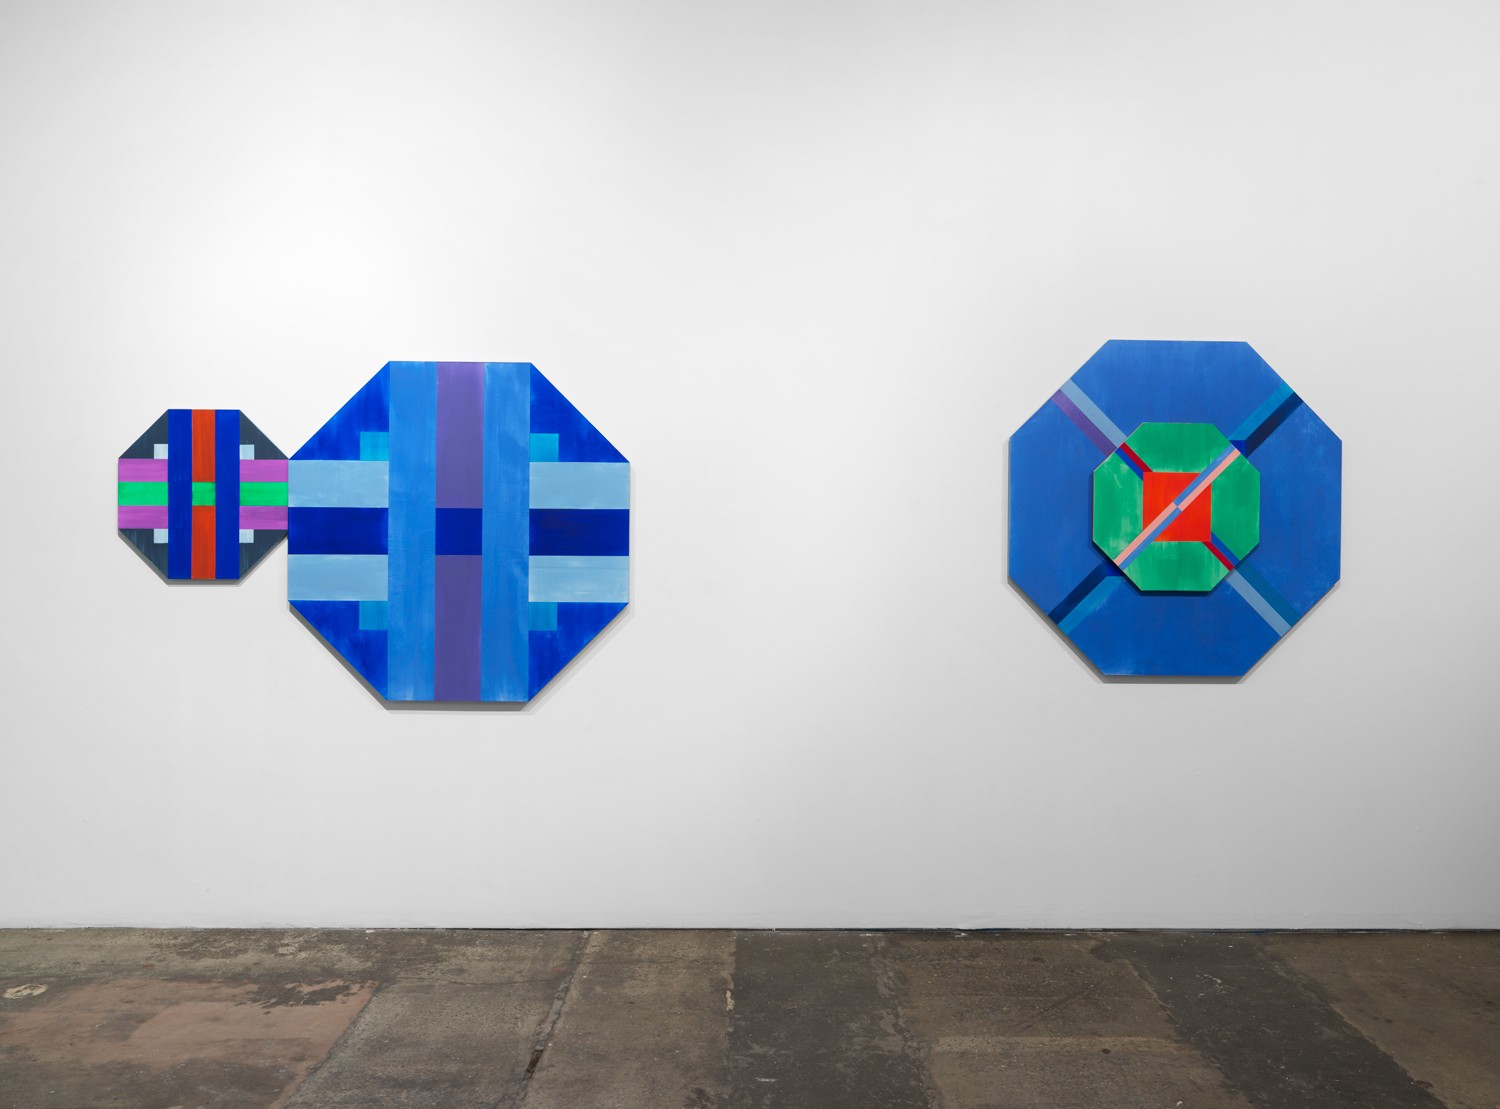 Installation view of ORRA paintings